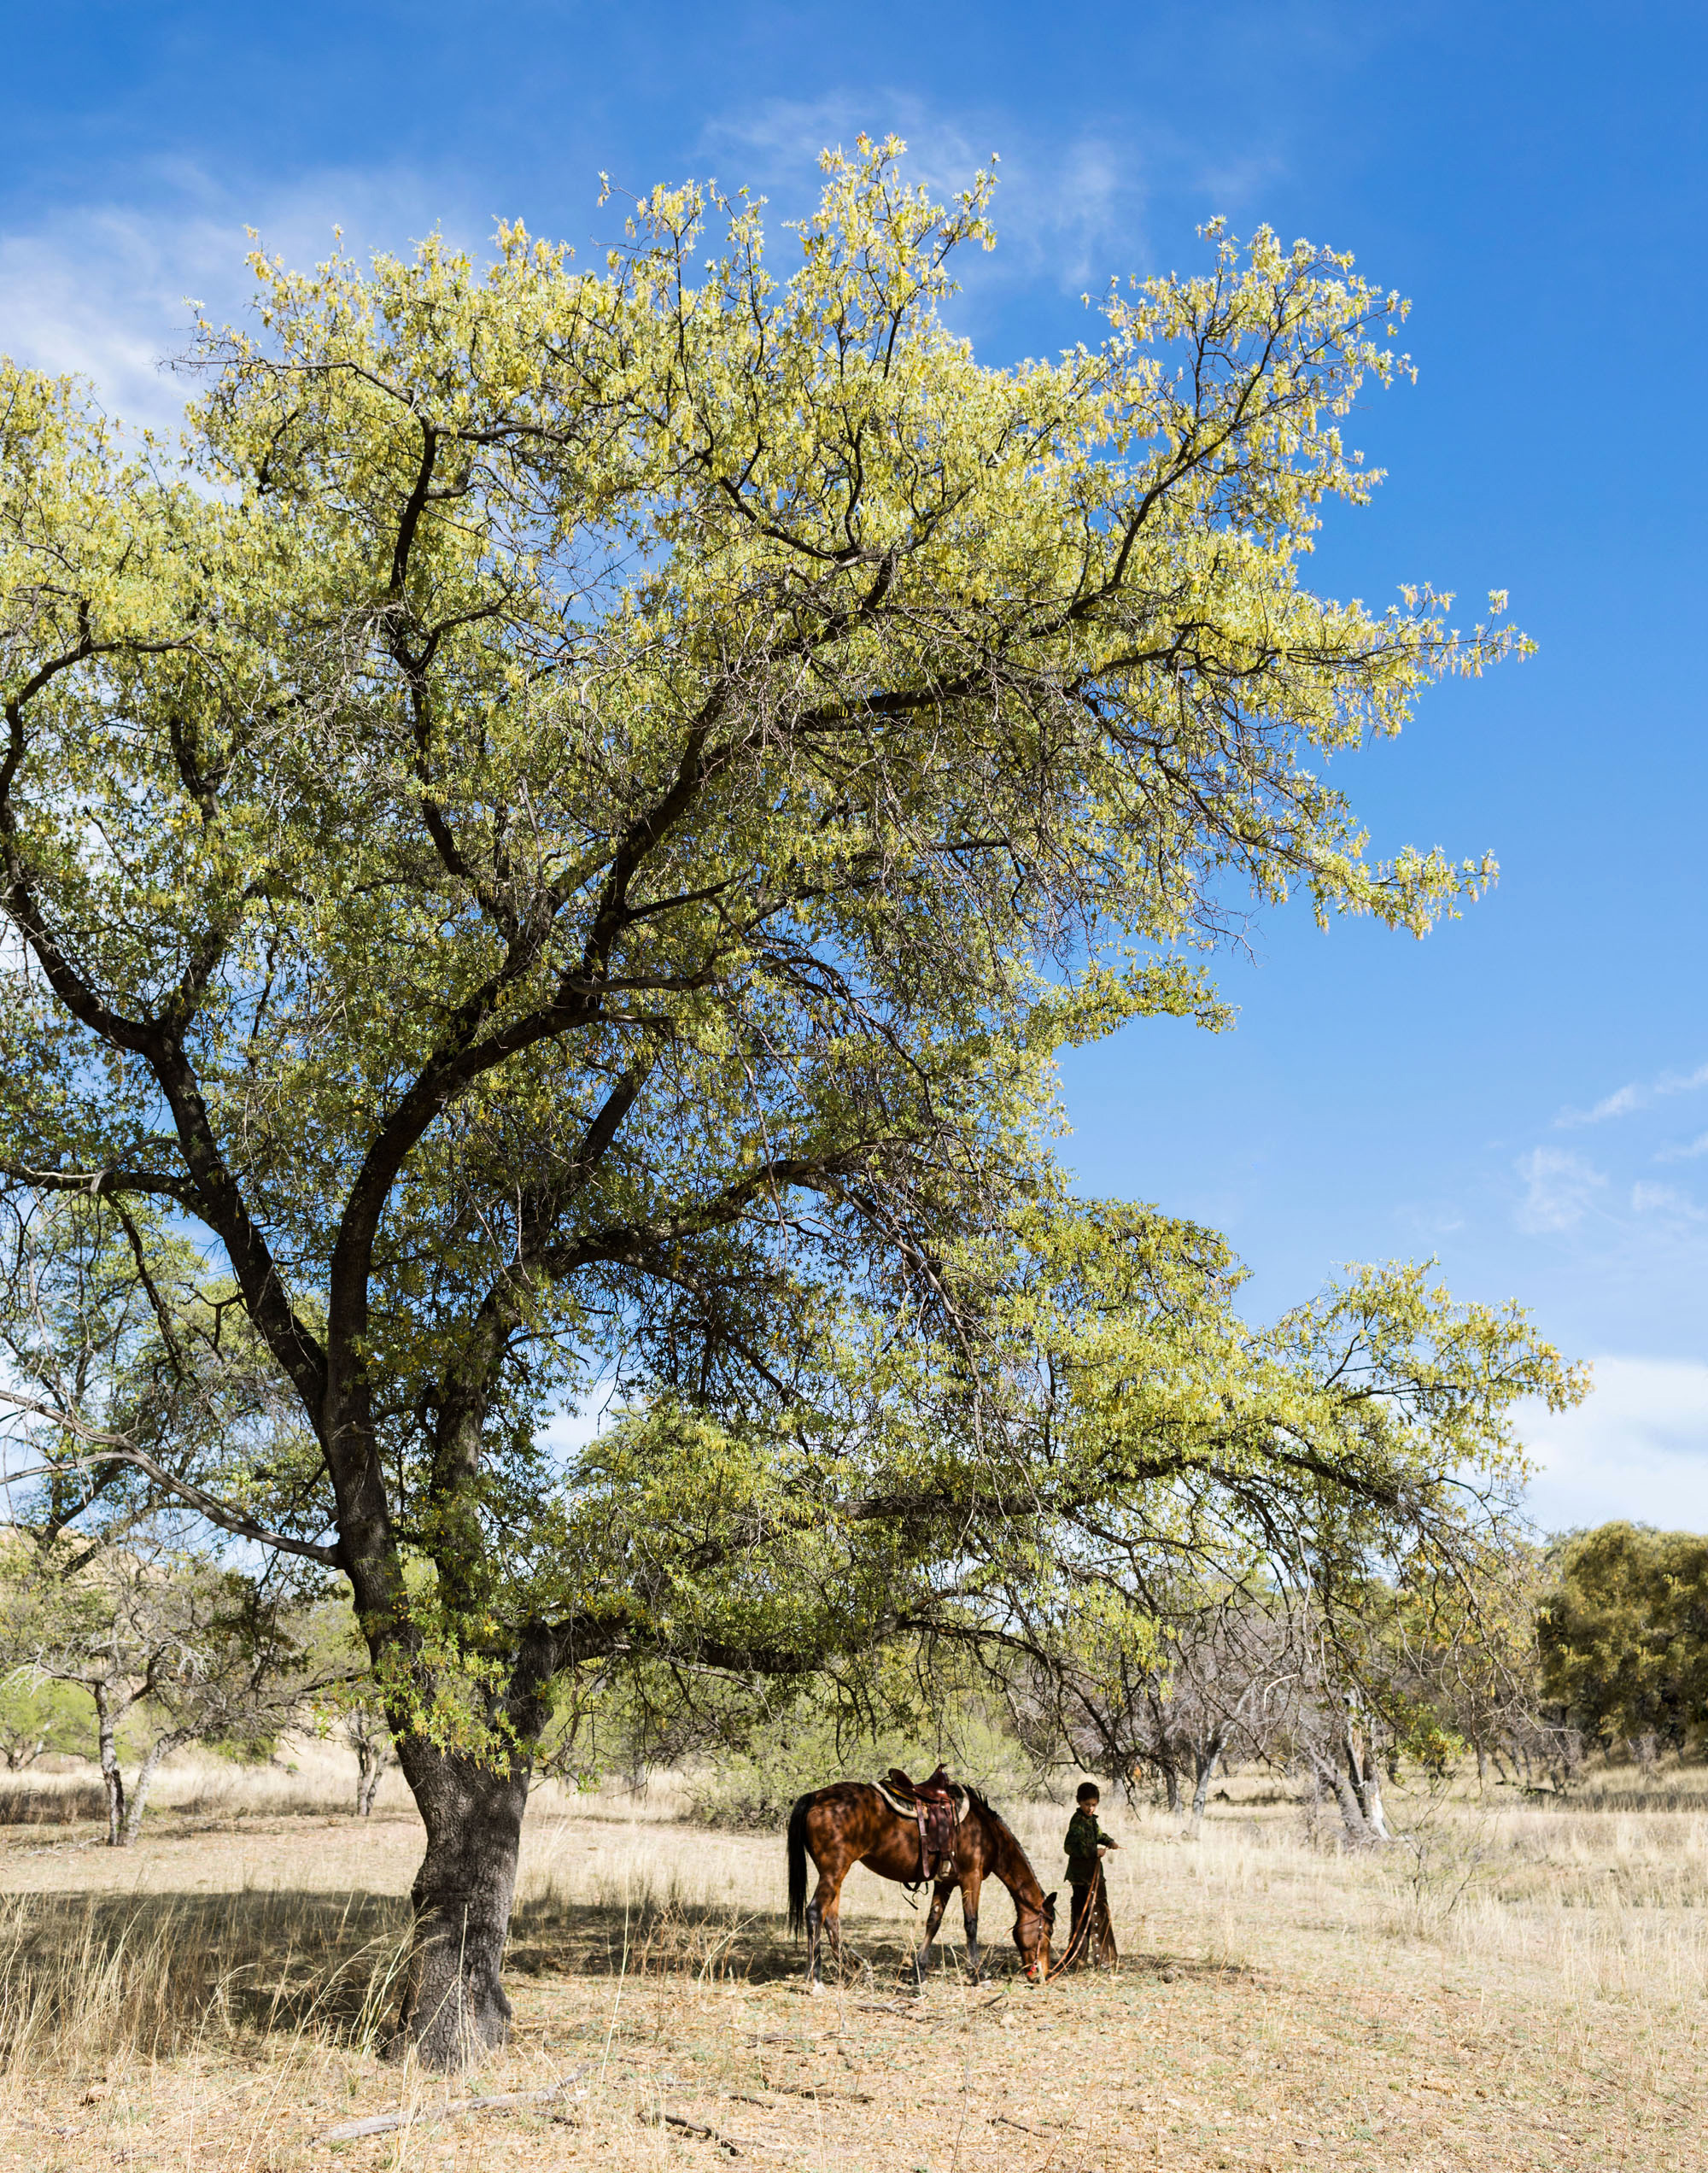 antoine and horse under tree